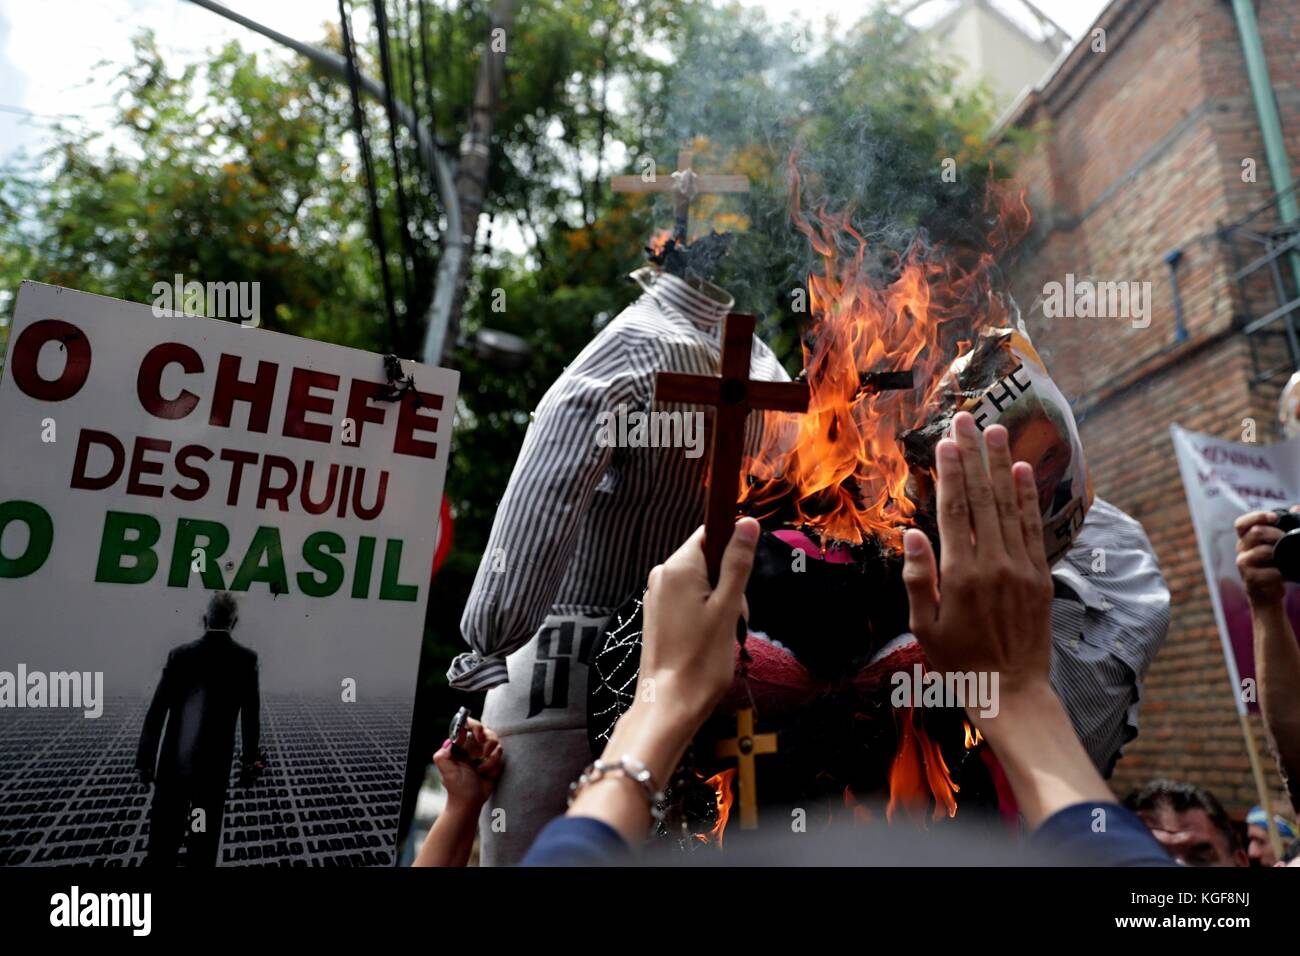 Sao Paulo, Brazil. 07th Nov, 2017. Protesters shout slogans against the US philosopher Judith Butler, one of the highest influential regarding the gender studies, during her participation in an international symposium in Sao Paulo, Brasil, 07 November 2017. Protesters were summoned by several ultra-conservative communities who asked to call off Judith Butler's participation. Credit: Fernando Bizerra Jr./EFE/Alamy Live News Stock Photo